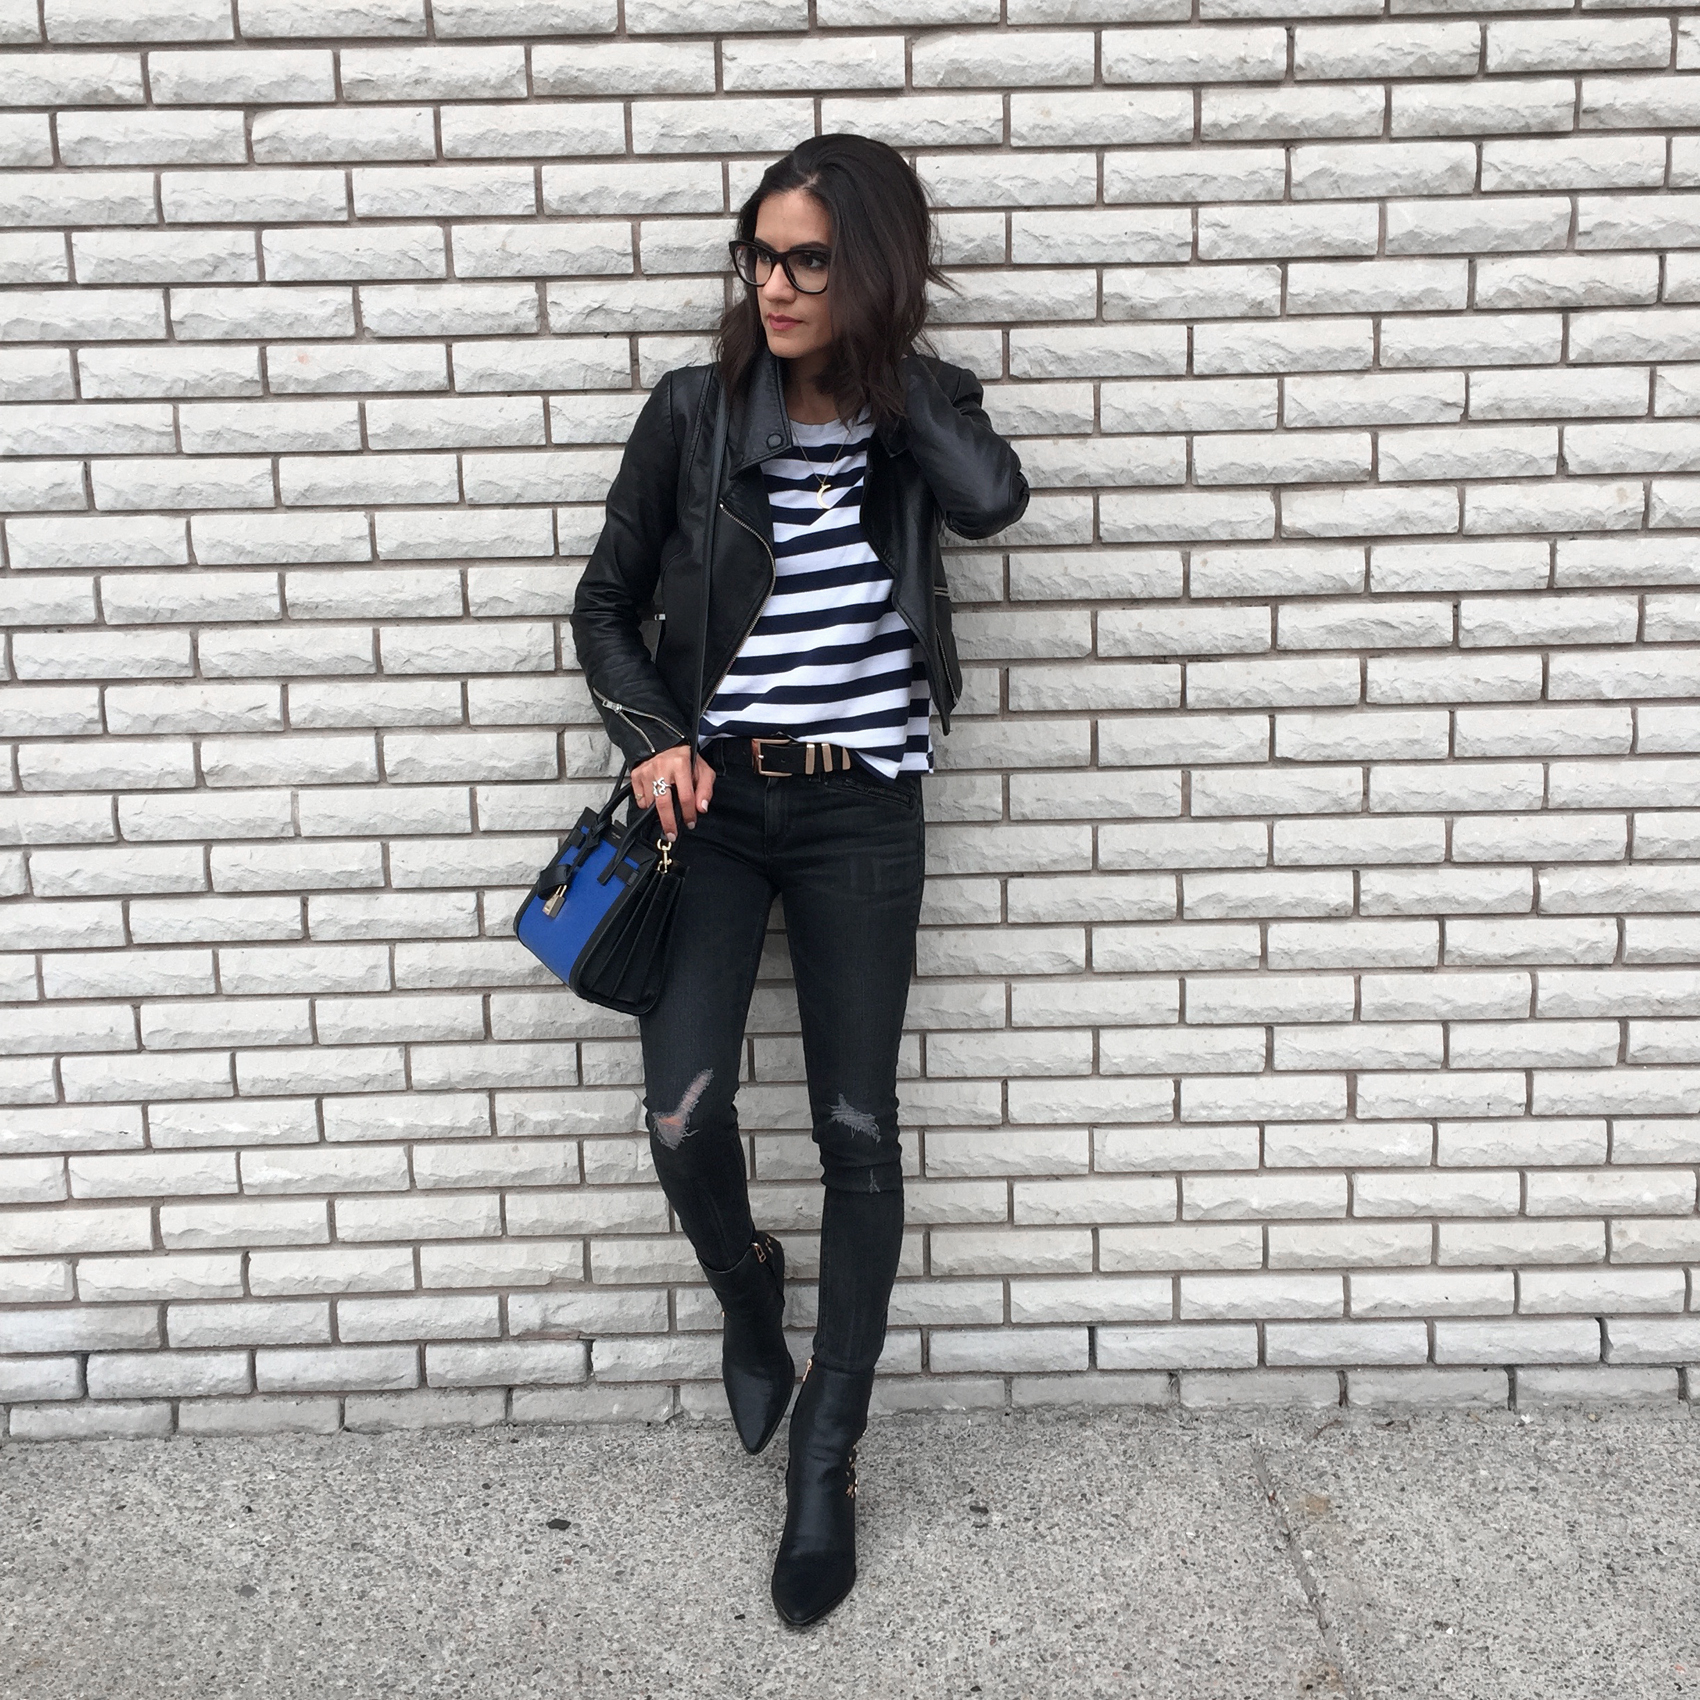 WoahStyle.com_Upper Canada Mall Gorgeous Magazine_Rag and Bone jeans_Mackage leather jacket_Kate Bosworth Matisse Star Boots_YSL Saint Laurent Nano Sac De Jour_Striped Tshirt_OOTD_StreetStyle_Luxe_5198.jpg